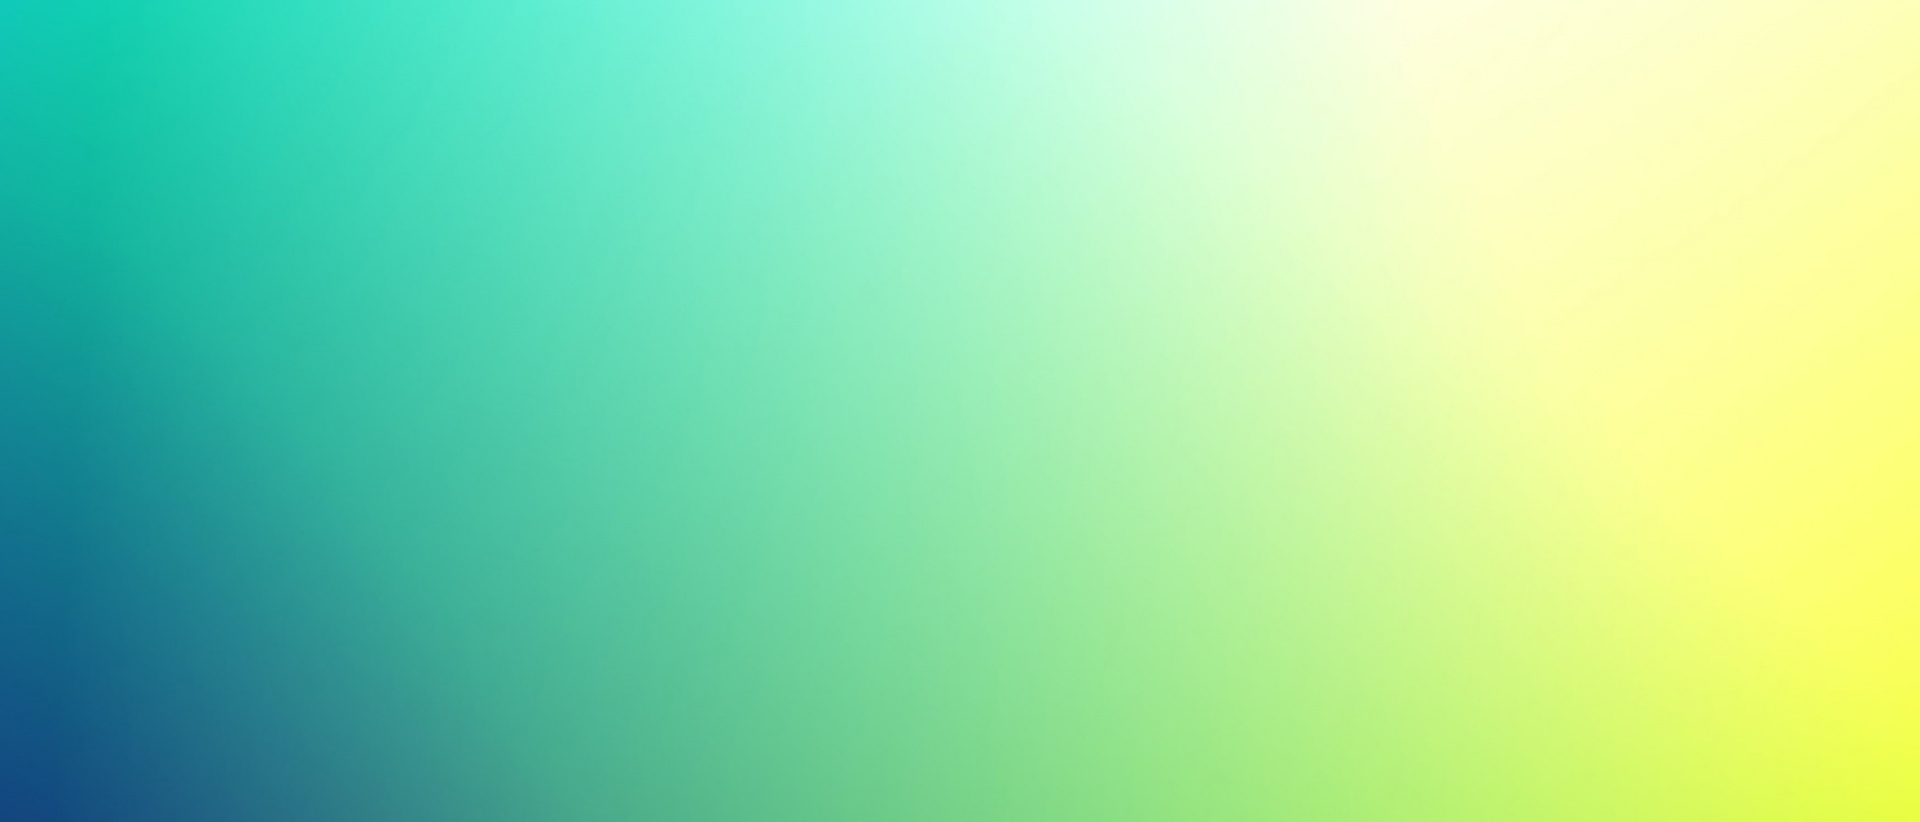 Plain colour gradient blue green yellow